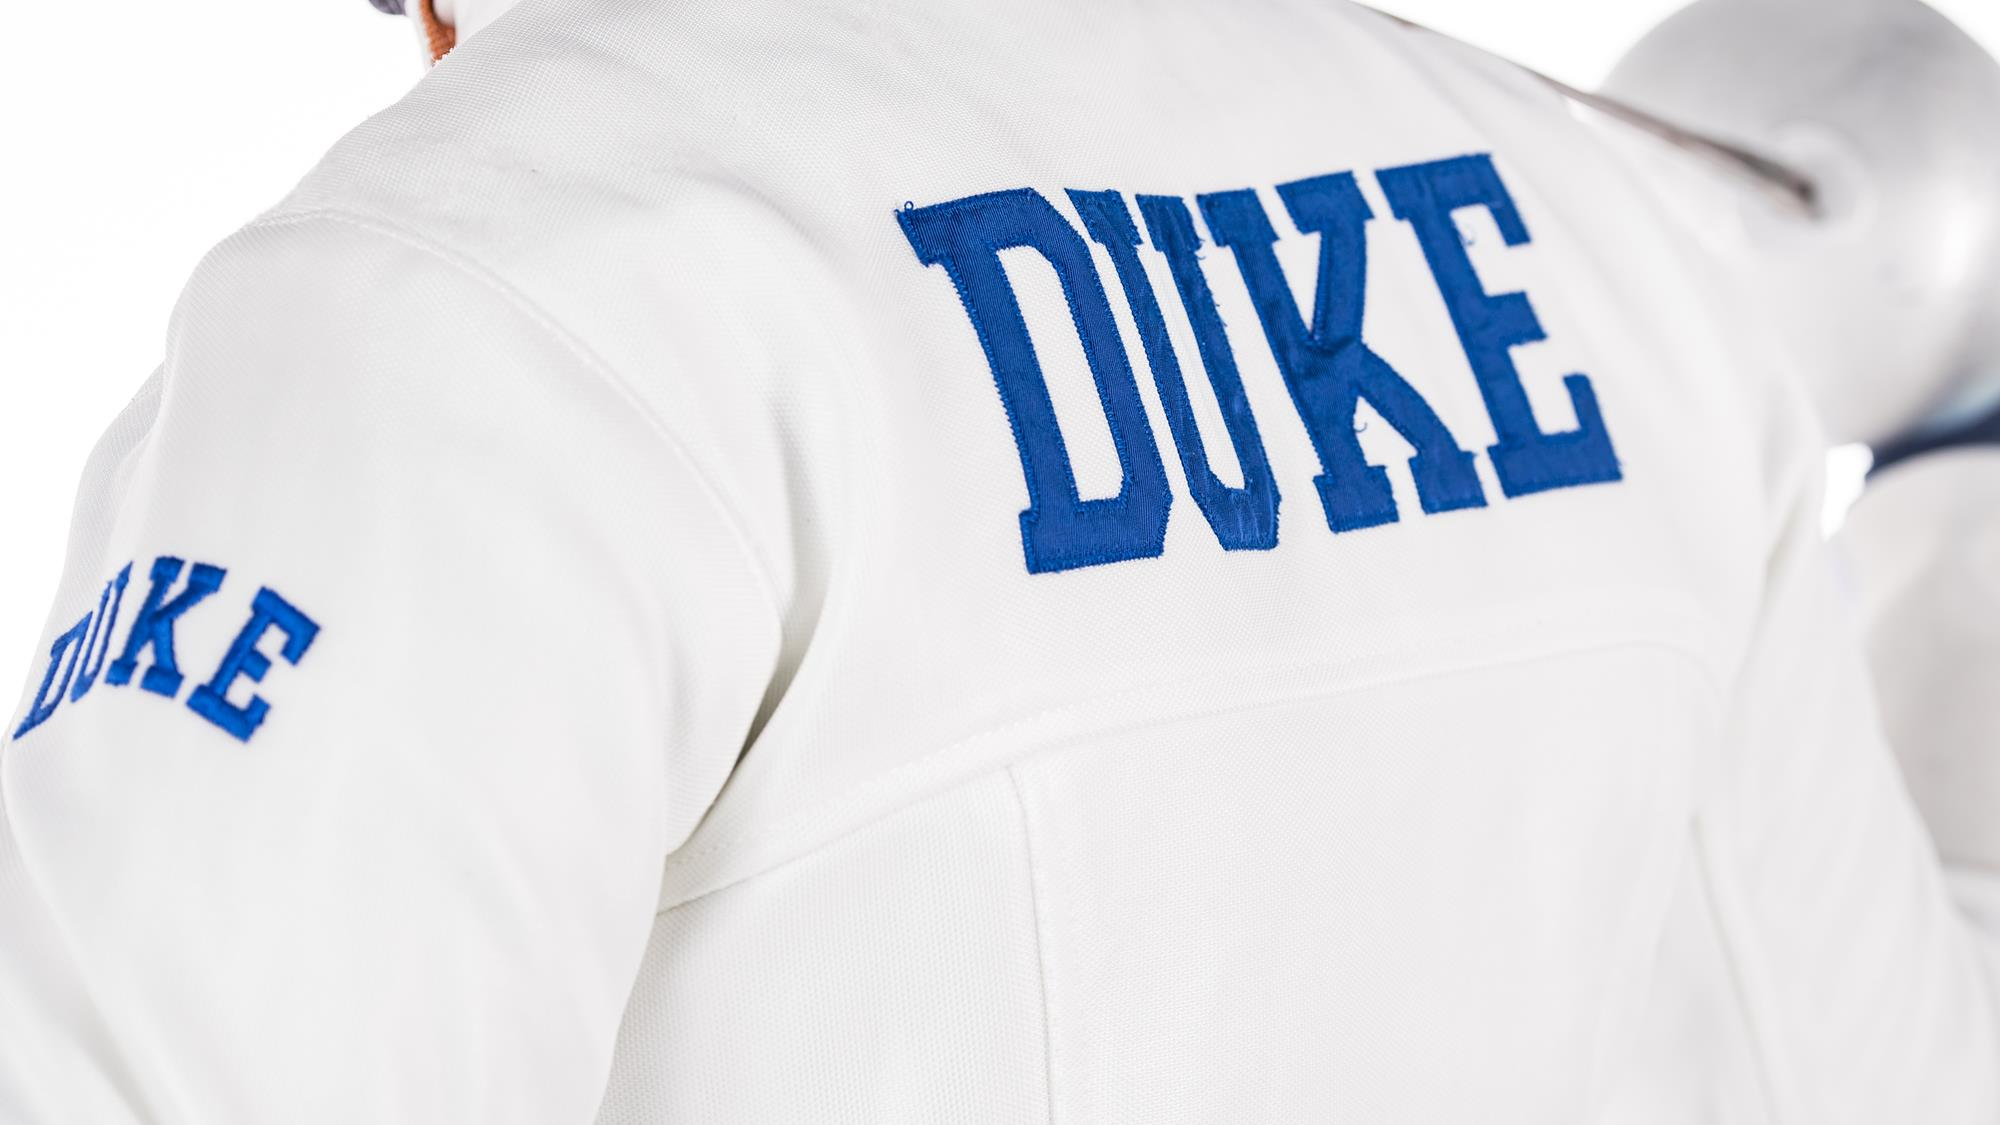 Duke Calendar 2021-22 Buchmann to Join Blue Devils in 2021 22   Duke University